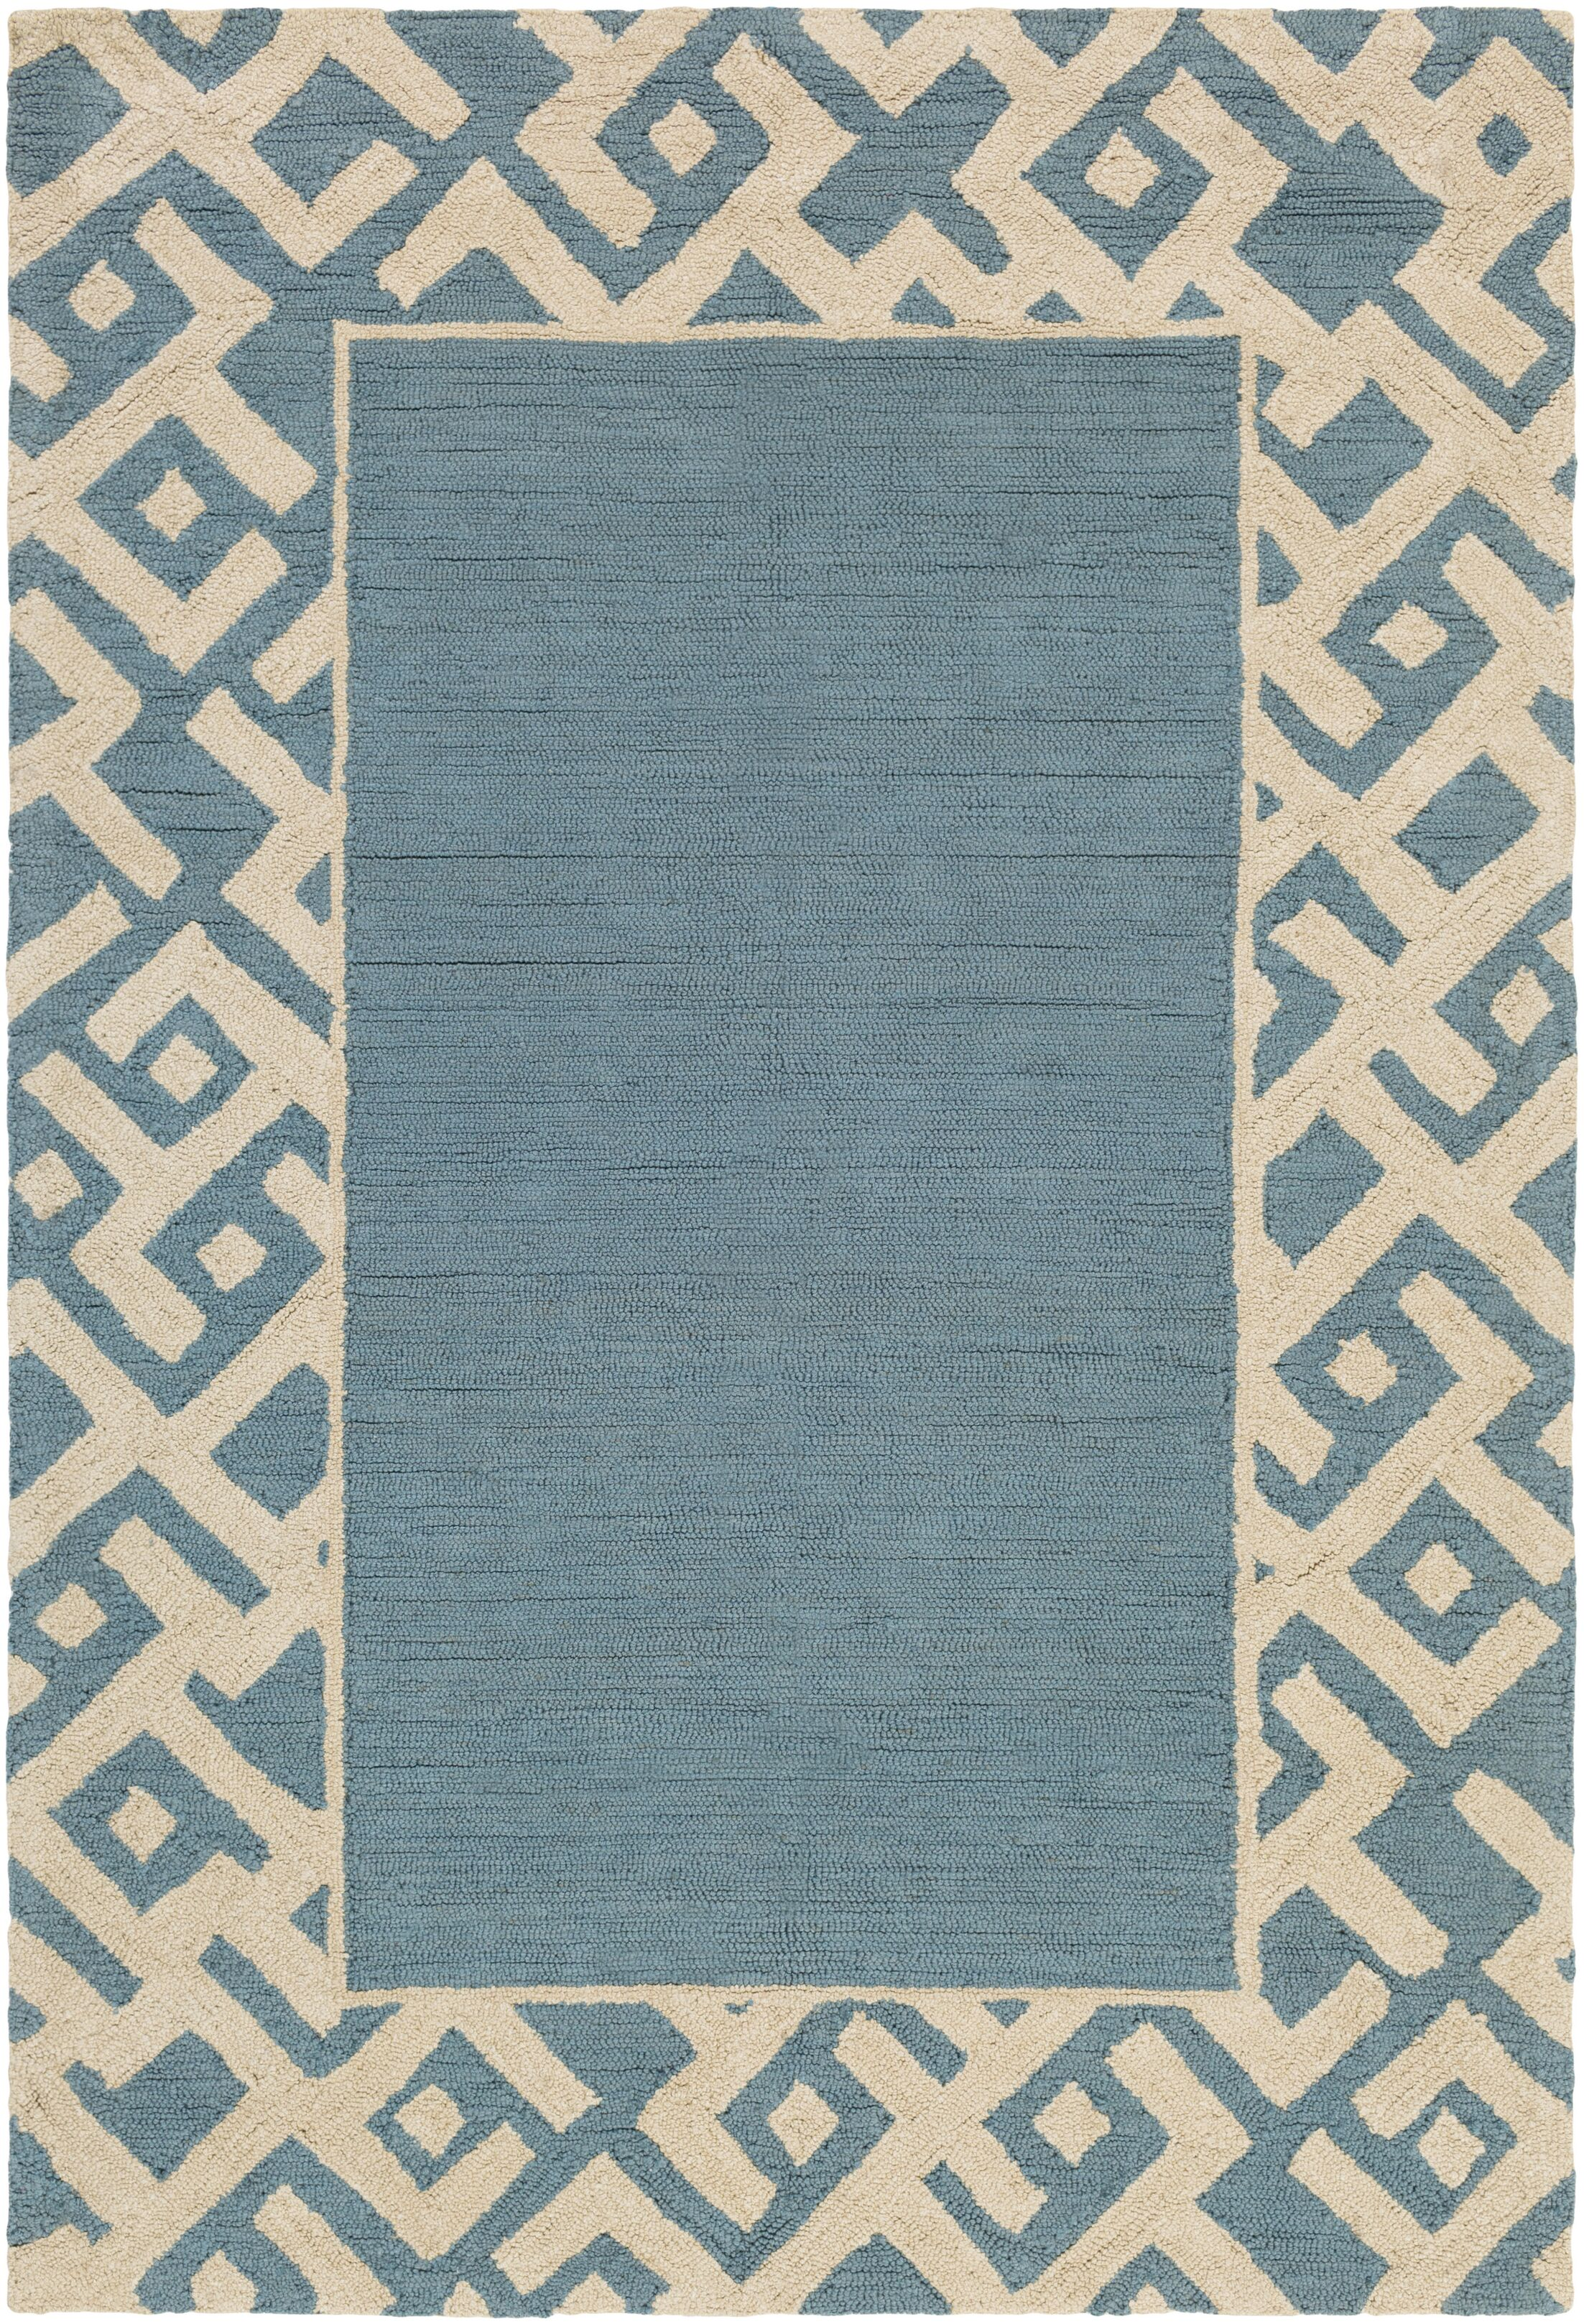 Judkins Hand-Tufted Light Blue/Beige Area Rug Rug Size: Rectangle 5' x 7'6